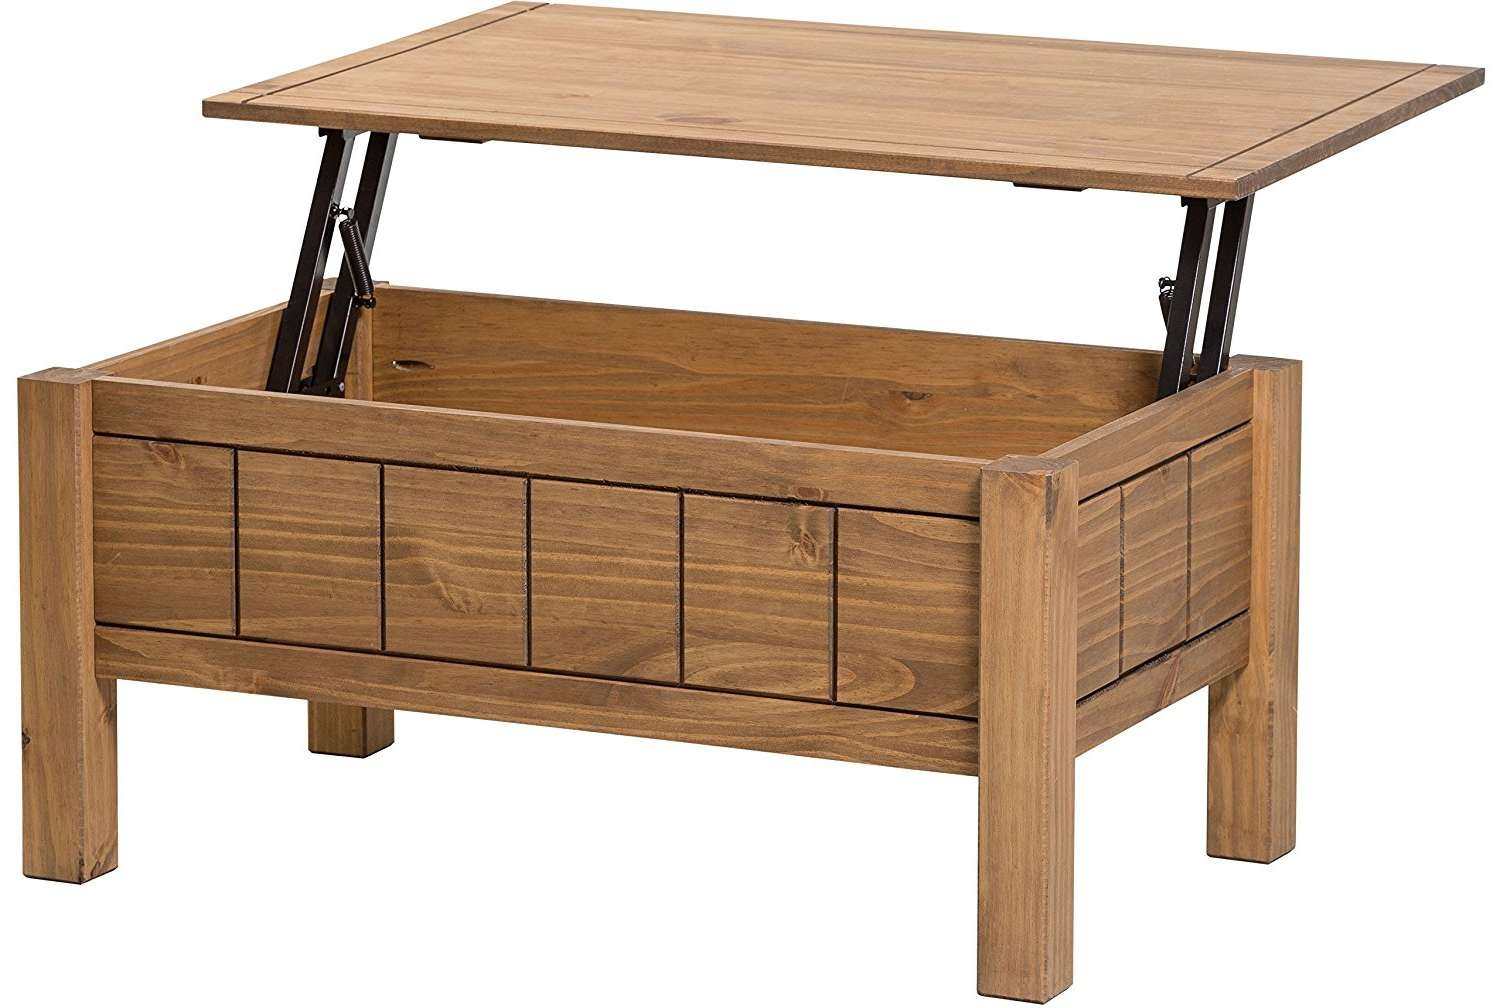 Newest Pine Coffee Tables With Storage Intended For Coffee Tables : Beautiful Corona Lift Up Coffee Table With Storage (View 16 of 20)